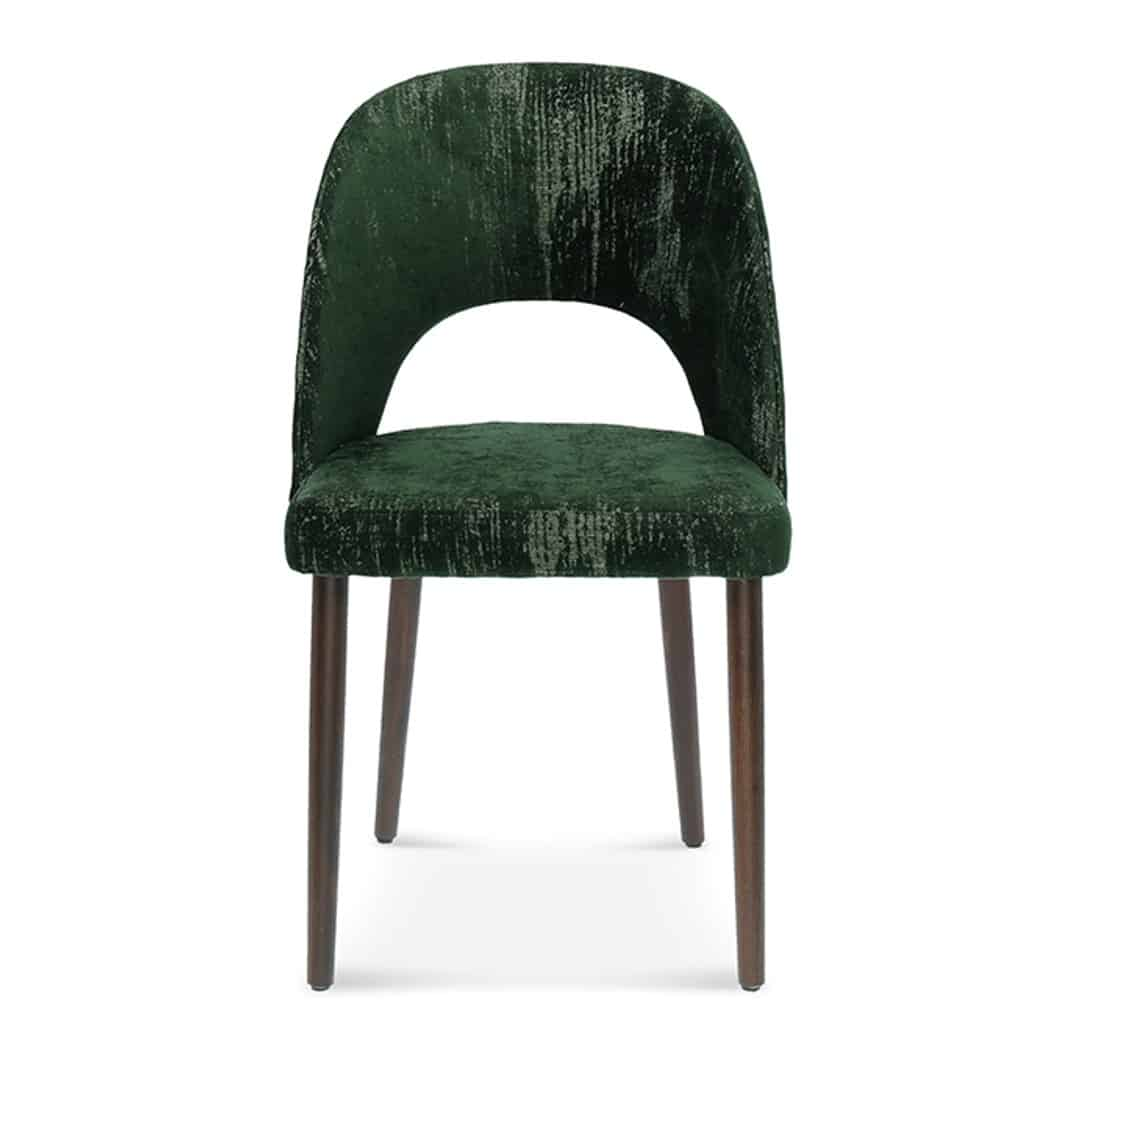 Alora side chair with open half moon back.